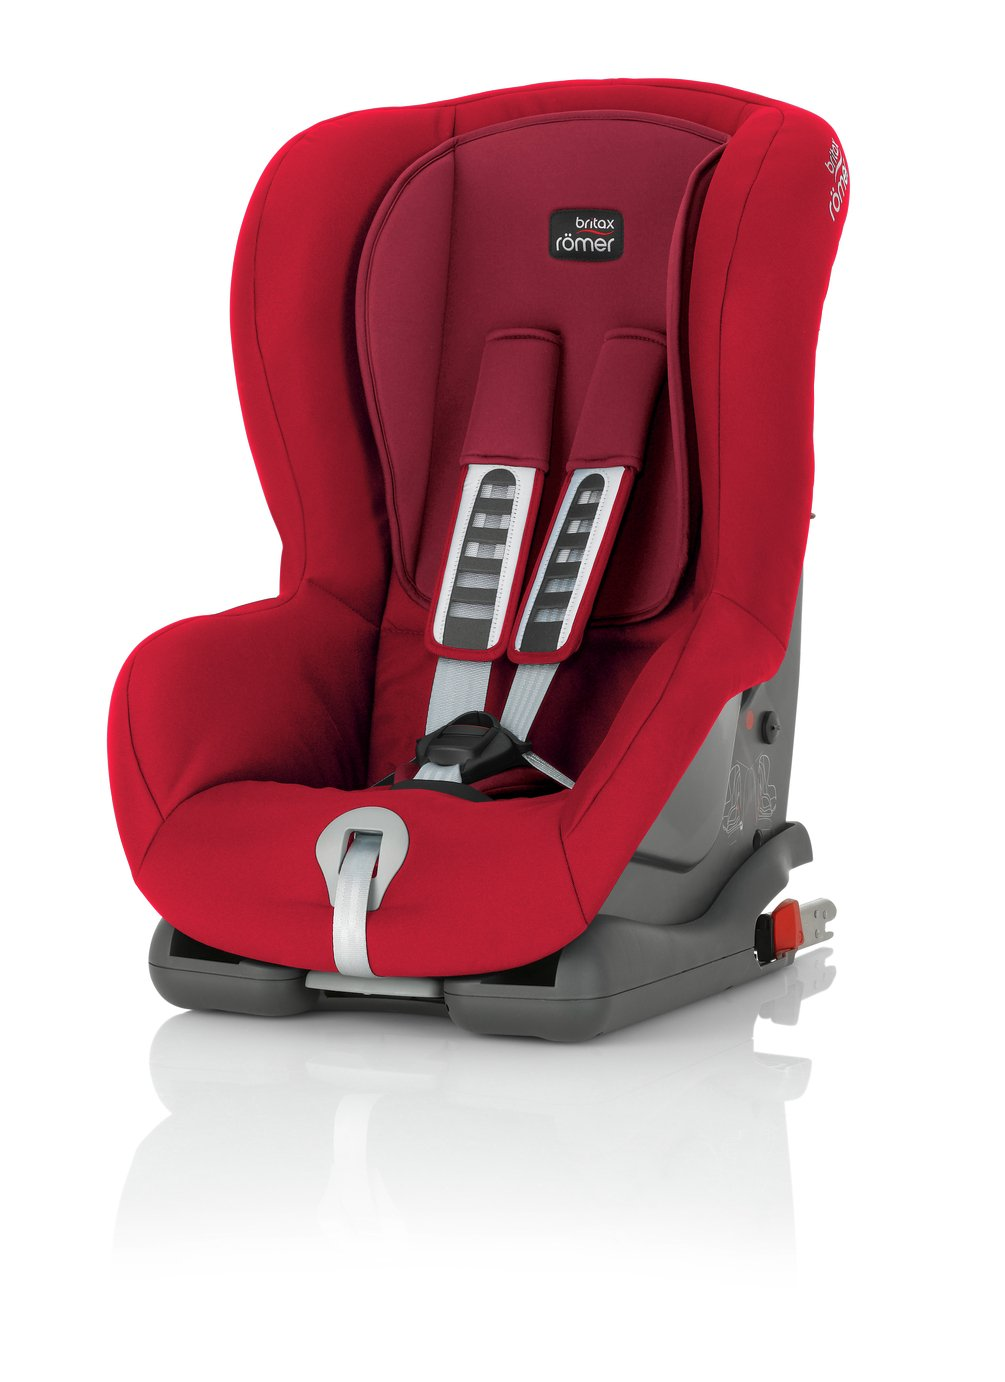 Image of Britax Romer DUO PLUS Group 1 Car Seat - Flame Red